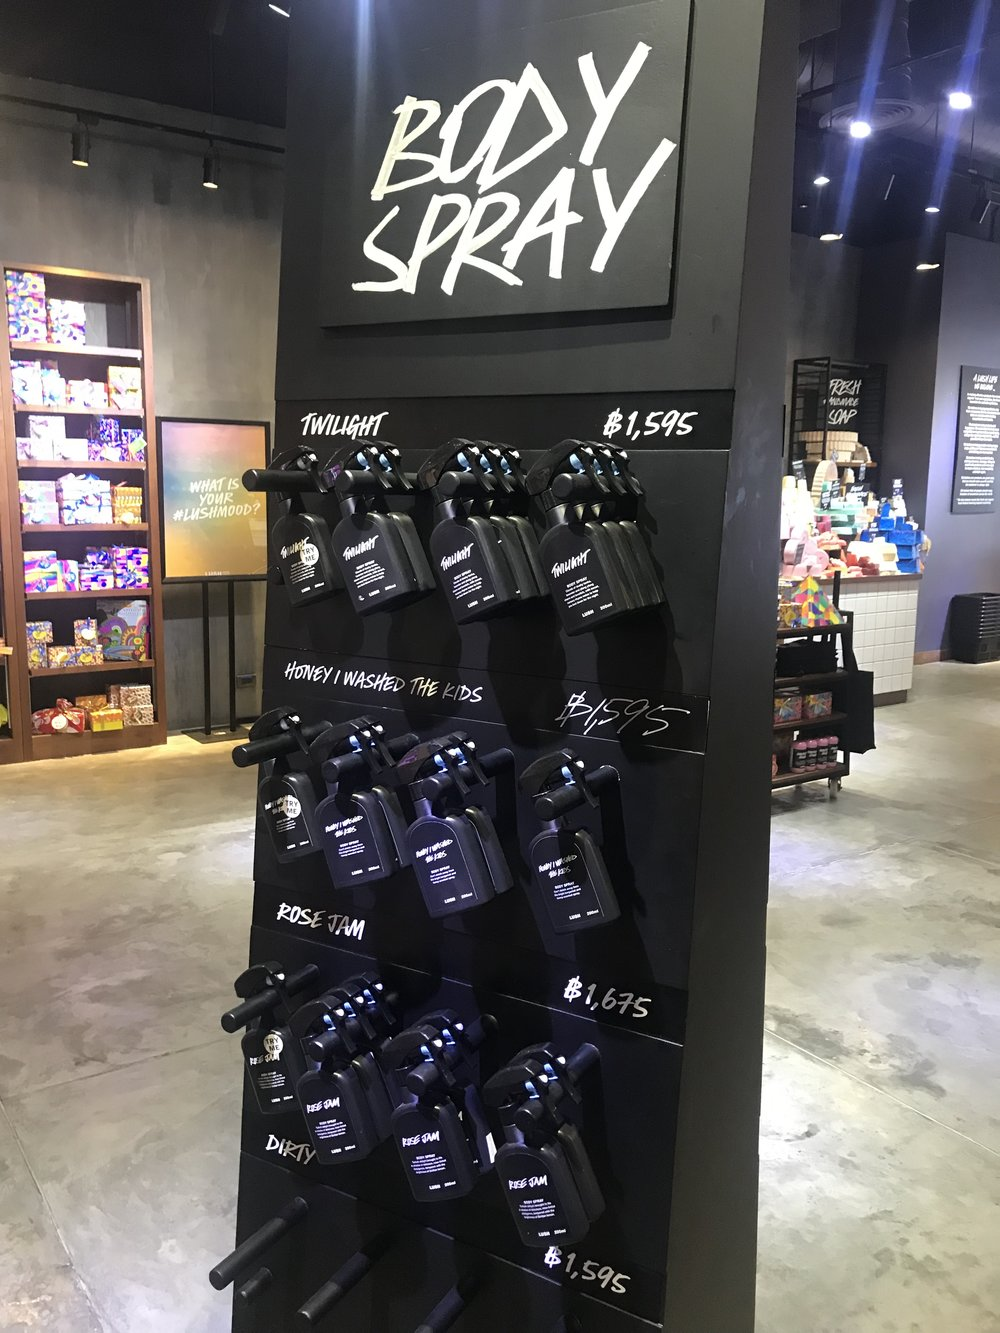 Lush Body Sprays